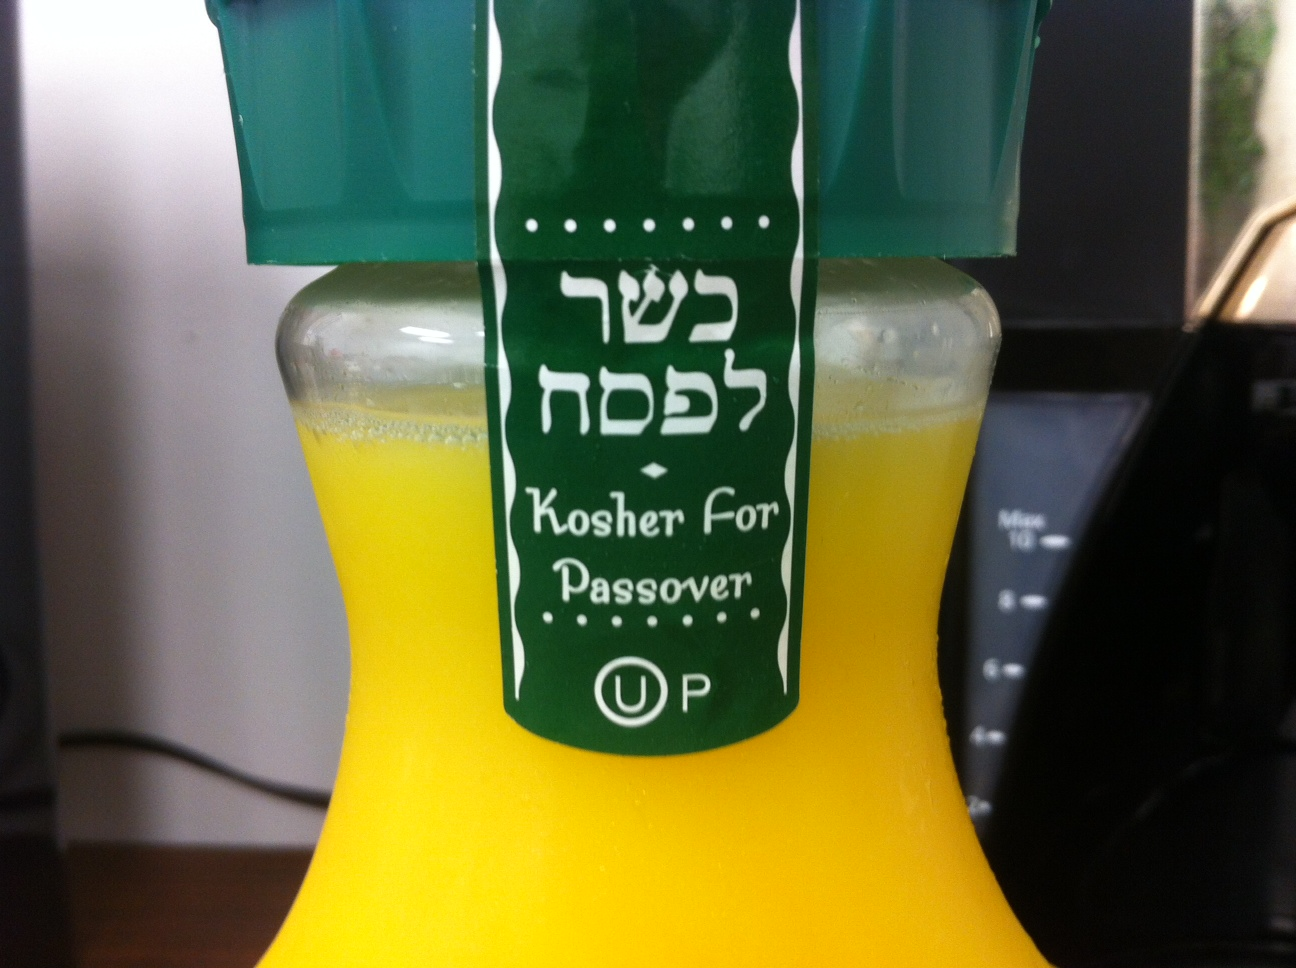 An image of kosher orange juice. Disclosing whether or not a food is kosher is one of the most important cultural labels that food and drink exports should use.